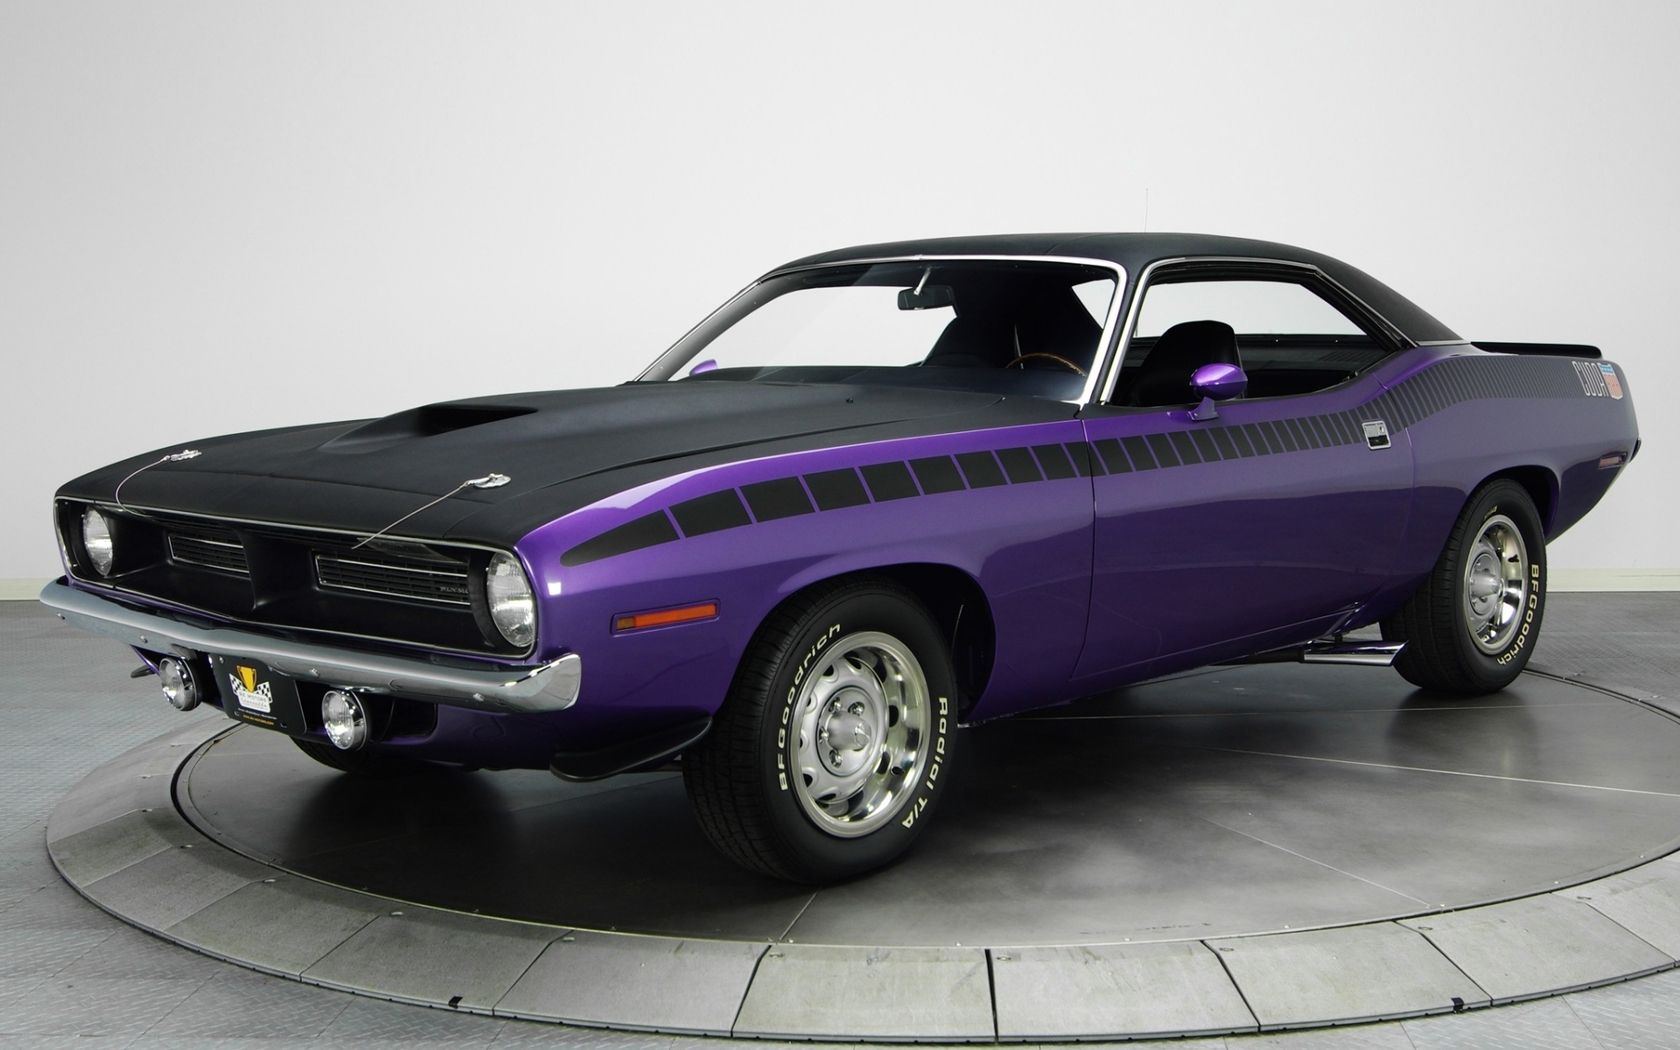 bea2ee33a98c97004055ec30c00a4313 purple 1970 plymouth aar 'cuda cool cars pinterest plymouth 1955 plymouth wiring diagram at nearapp.co